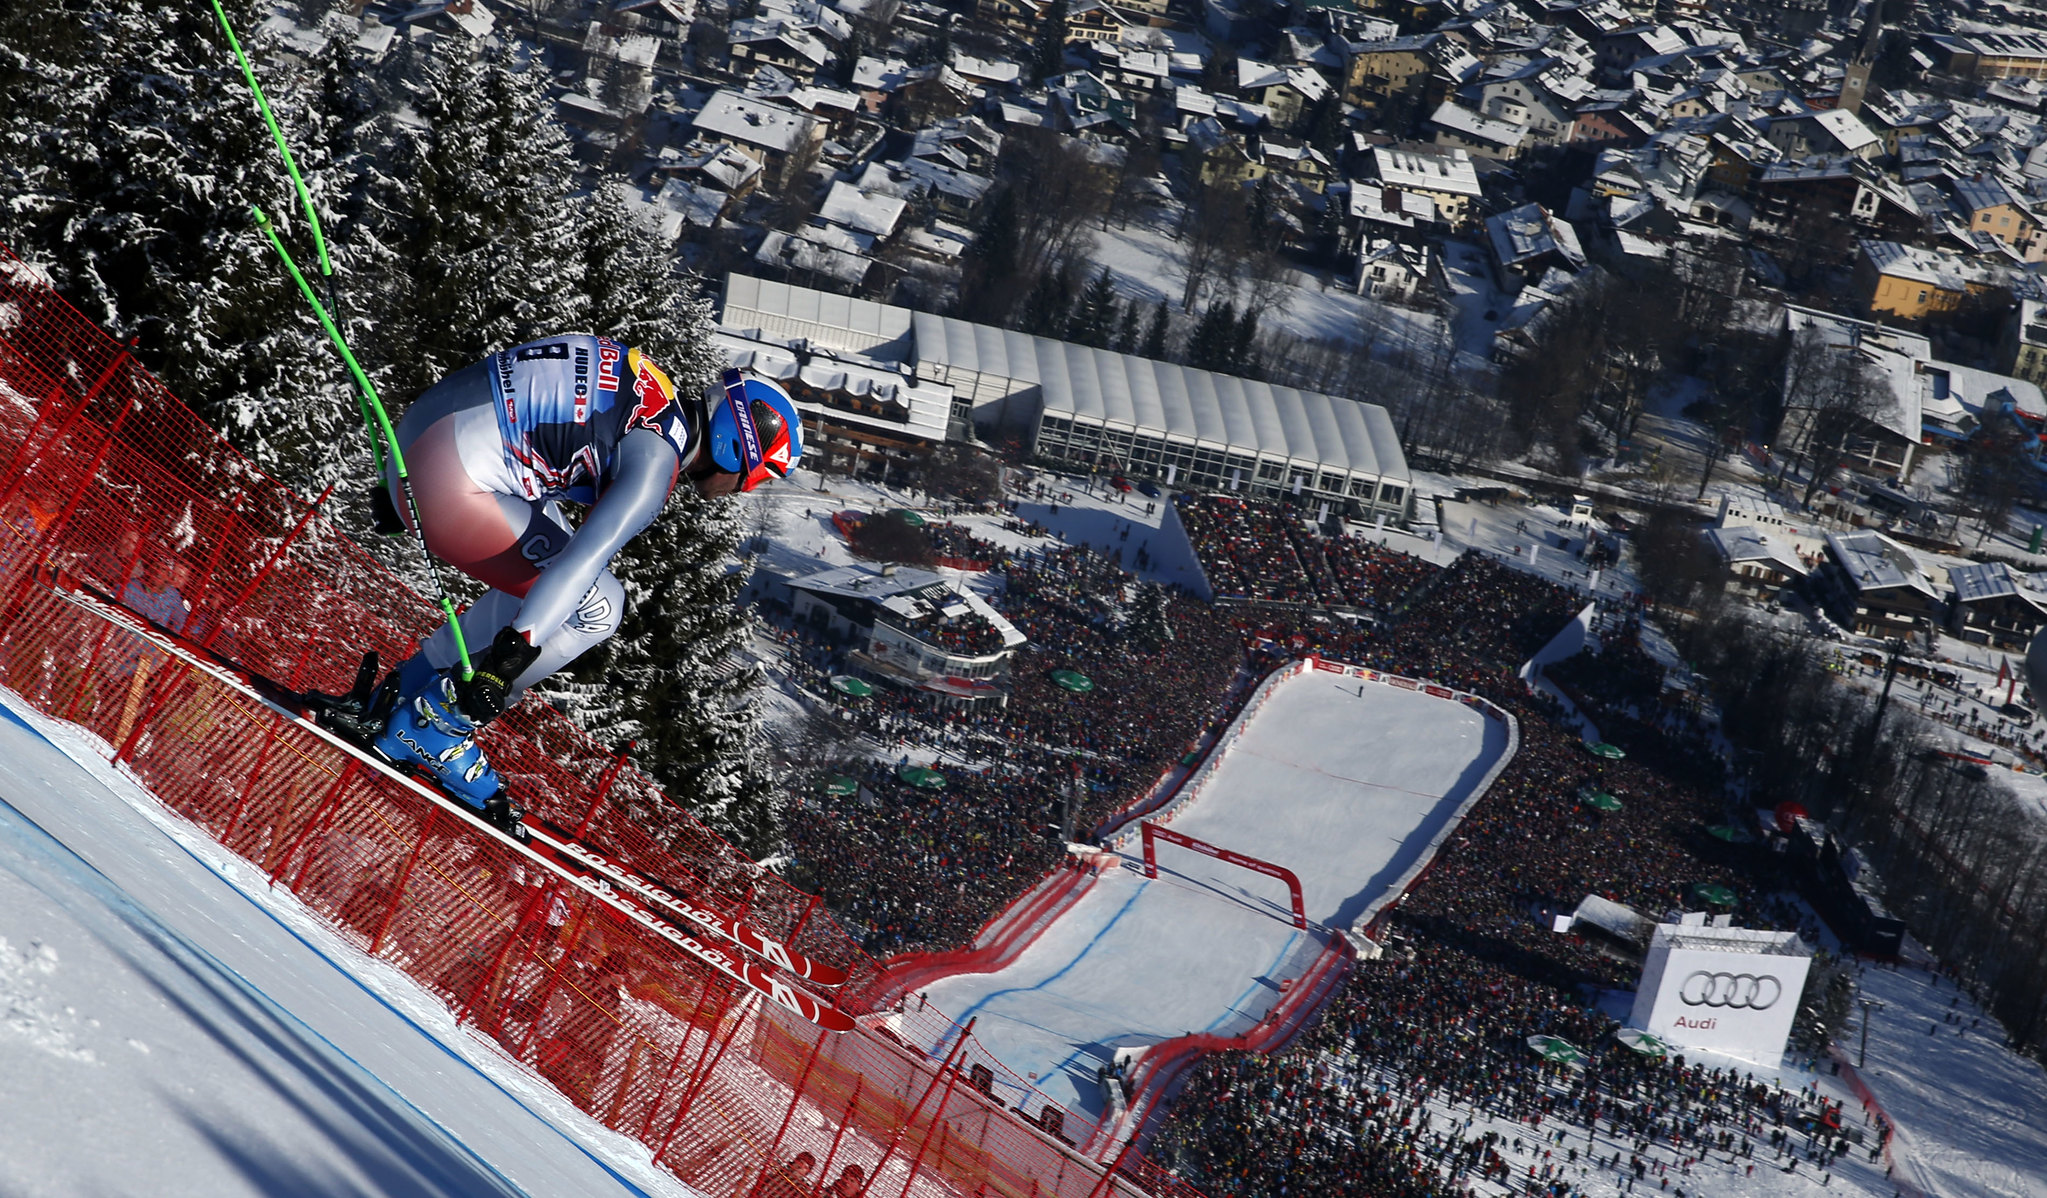 Jan Hudec catches air, with the finish area of the Kitzbühel downhill visible in the background.